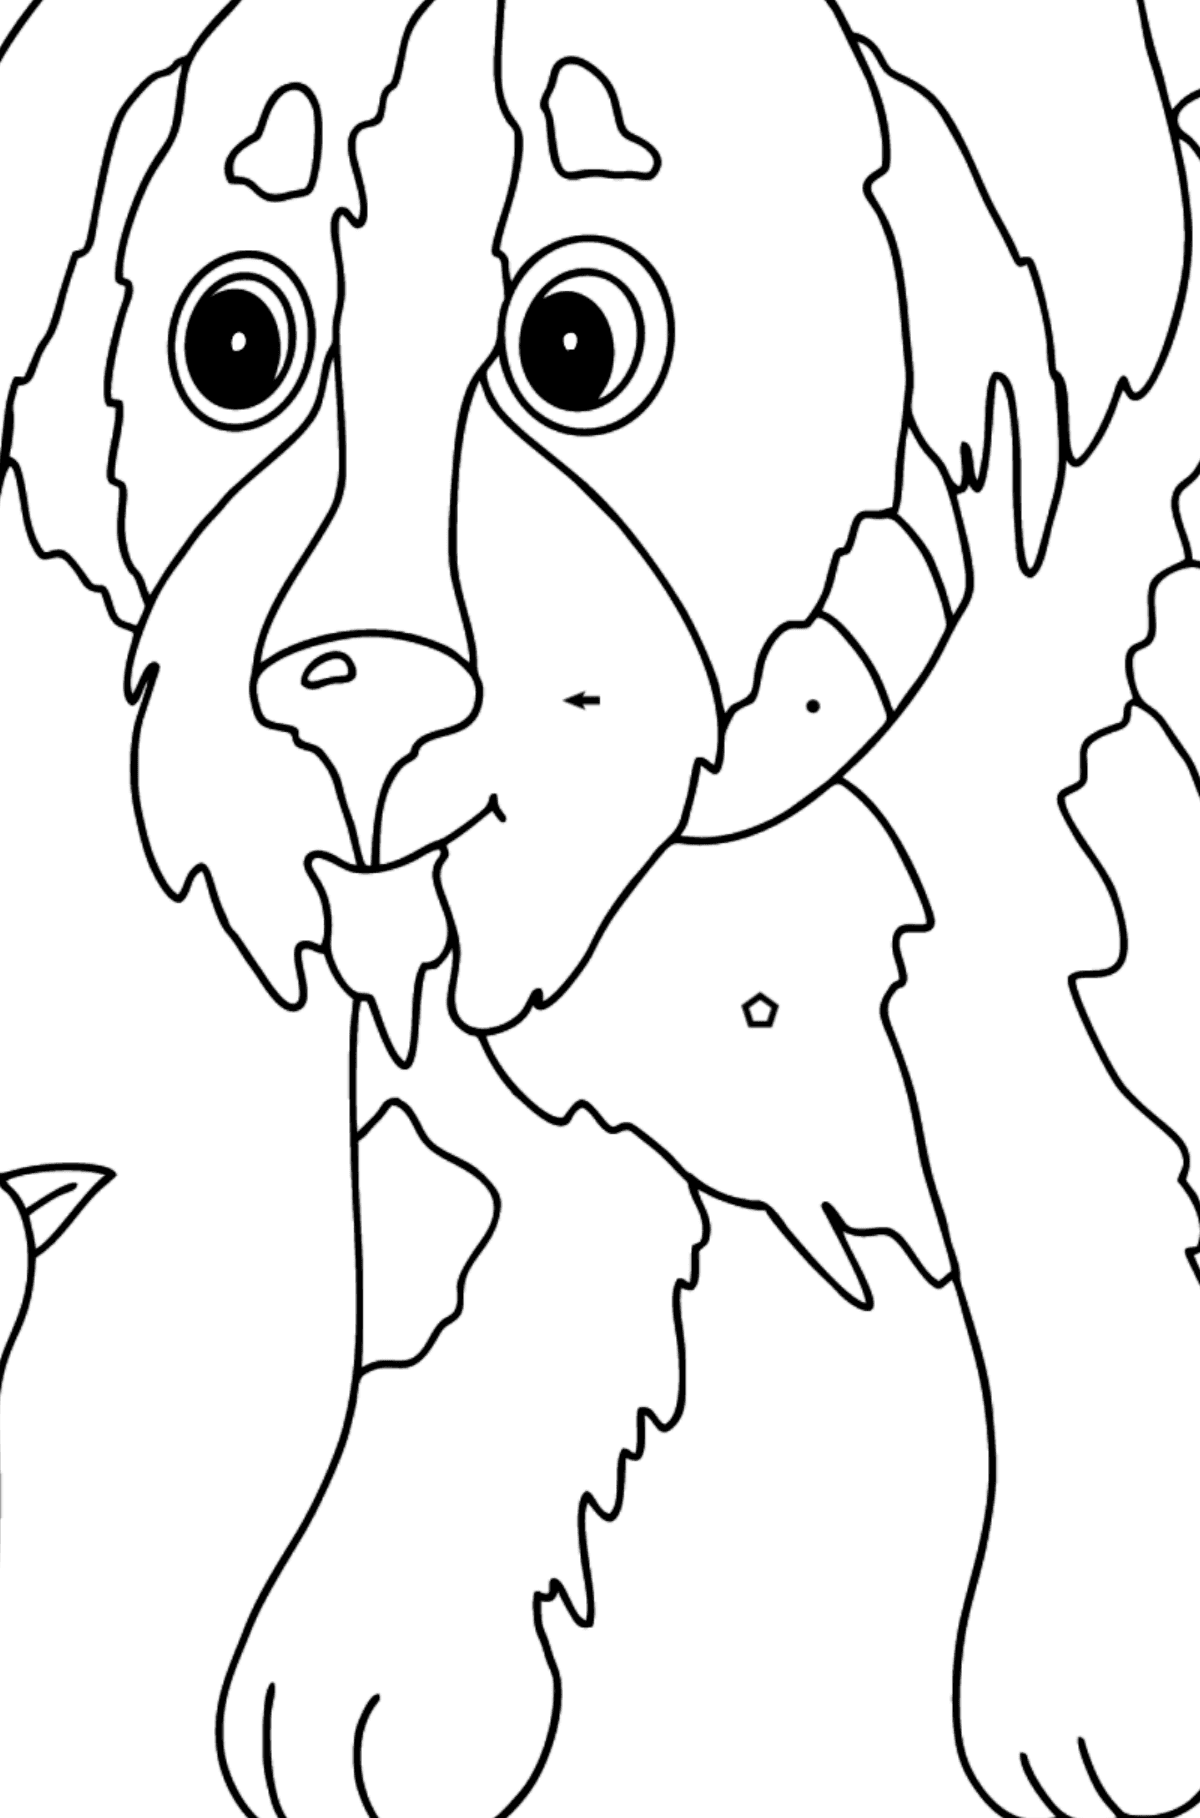 Coloring Page - A Dog is Talking to a Bird - Coloring by Symbols and Geometric Shapes for Kids